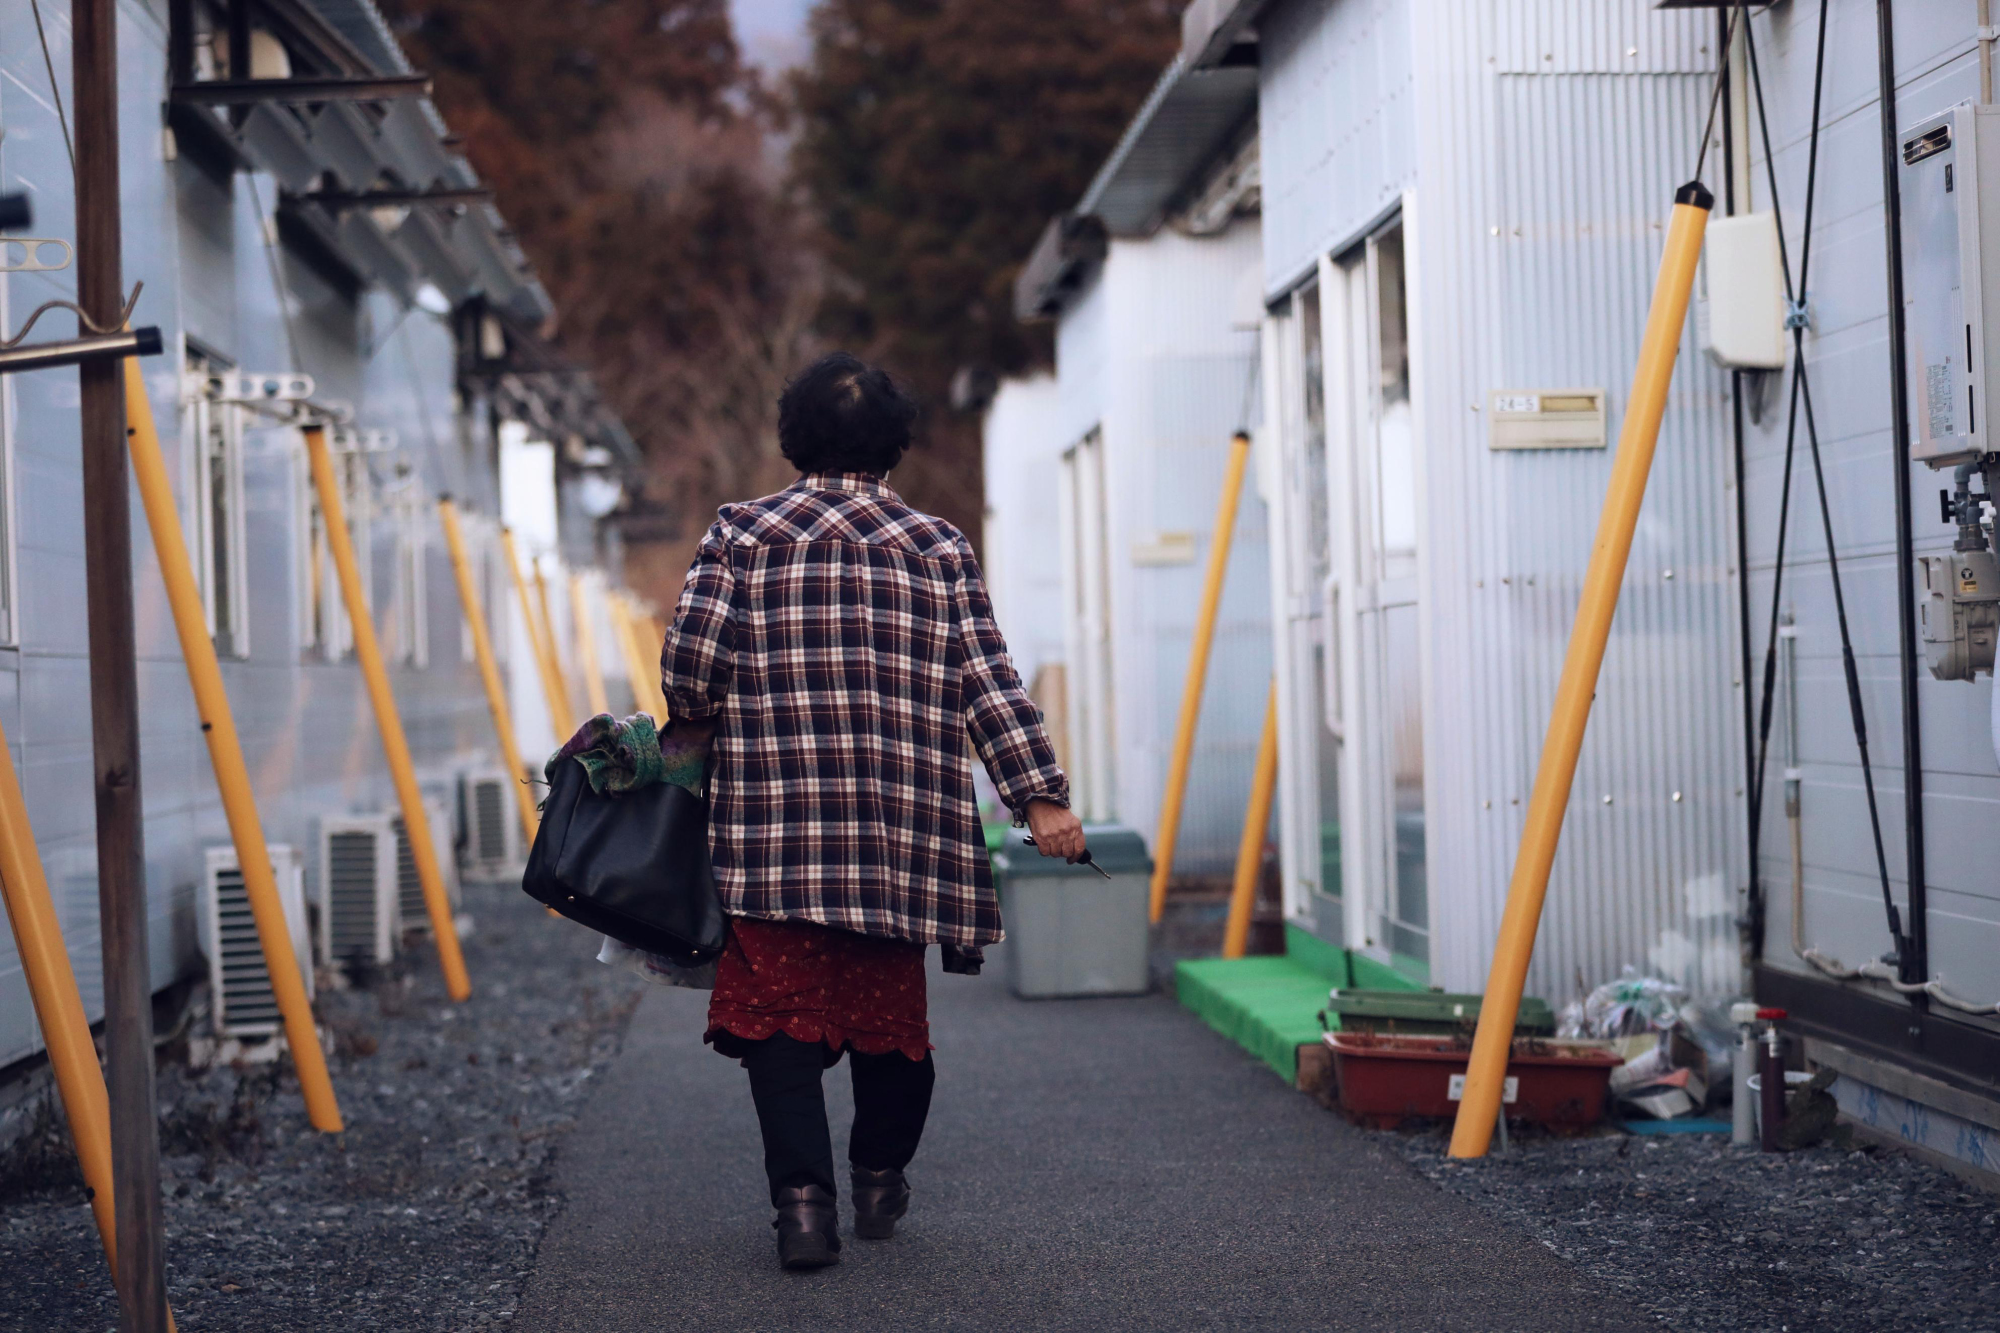 The long stopgap: A woman visits her son, who is still living in temporary housing in Ofunato, Iwate Prefecture. | KYODO